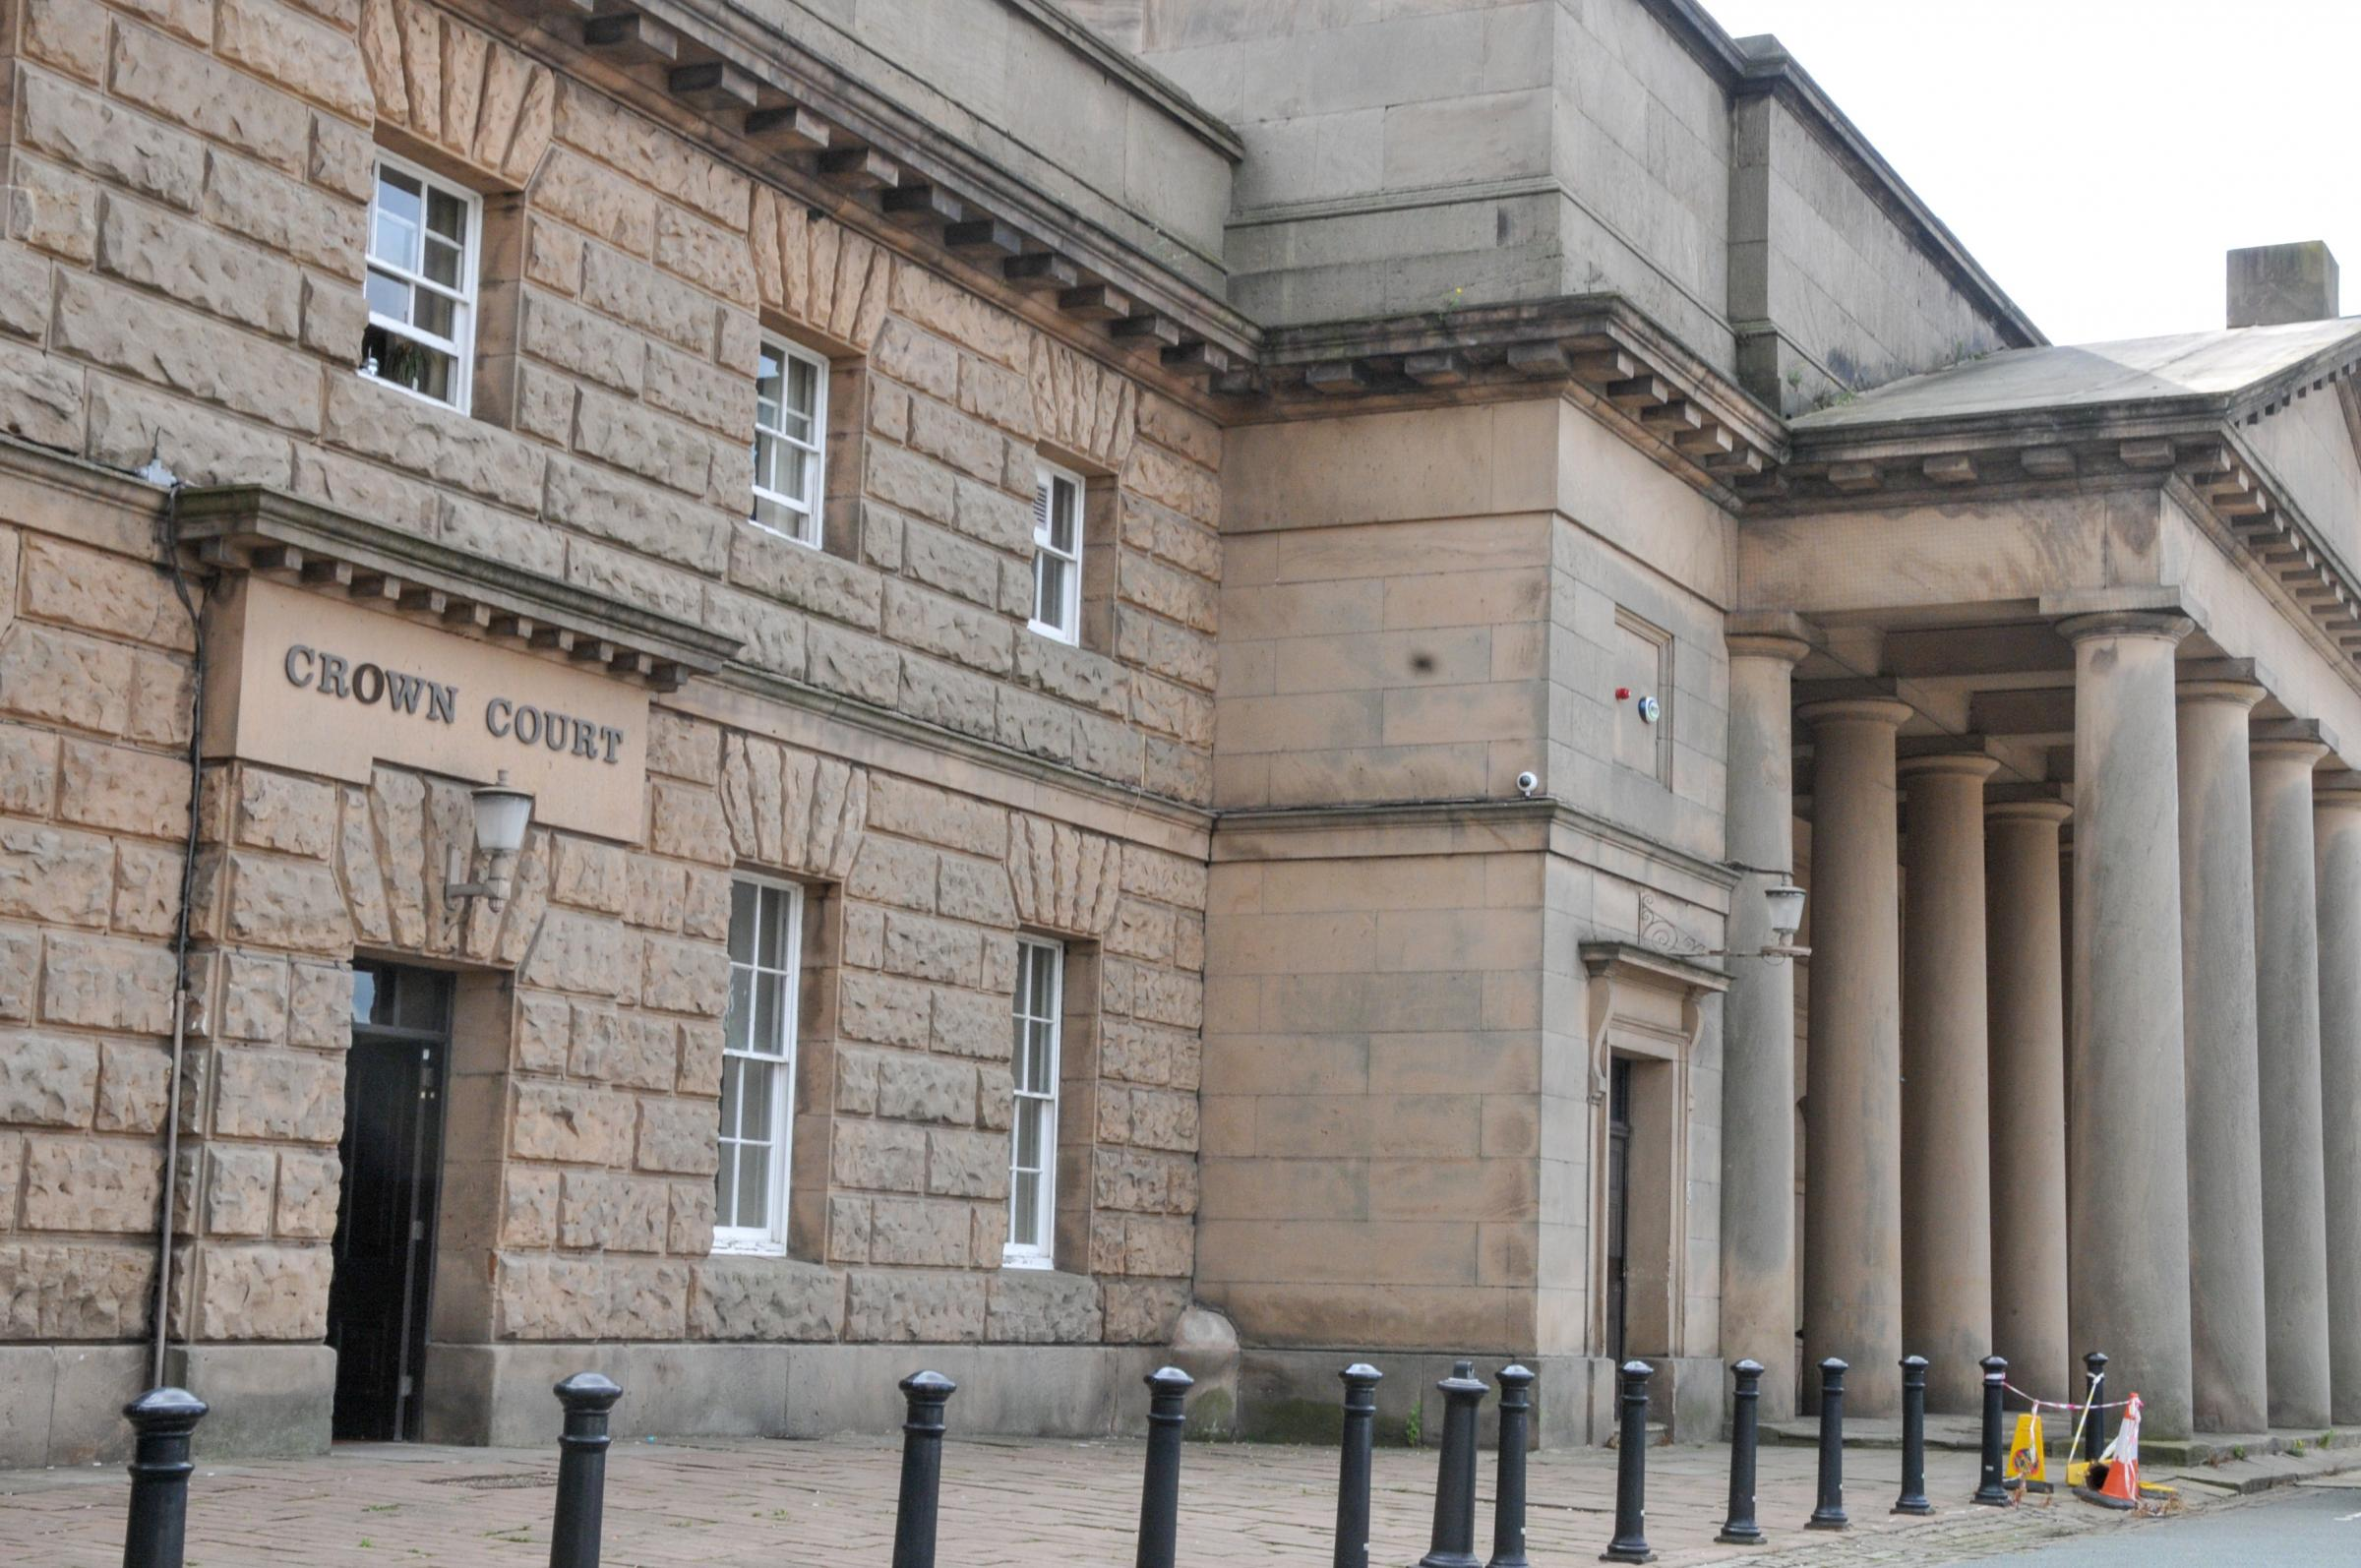 Judge labels Chester man 'a danger to children' after more than 1,000 indecent images found